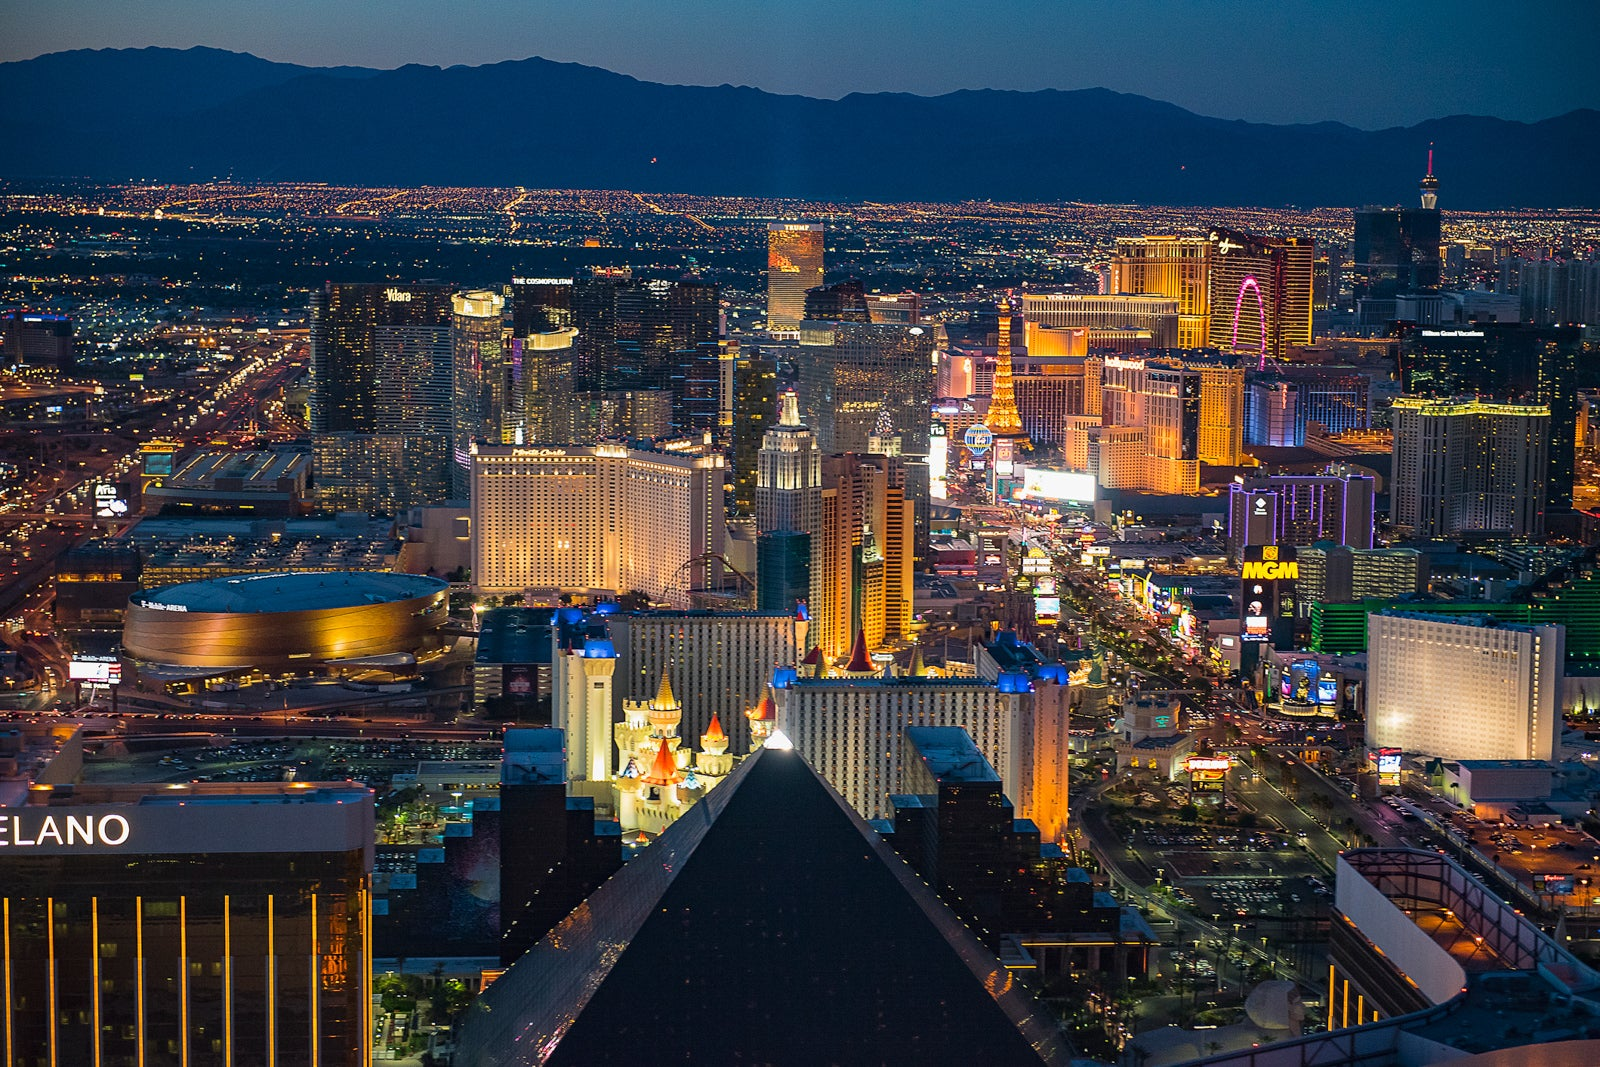 An insider's guide to the top 13 things to do in Las Vegas